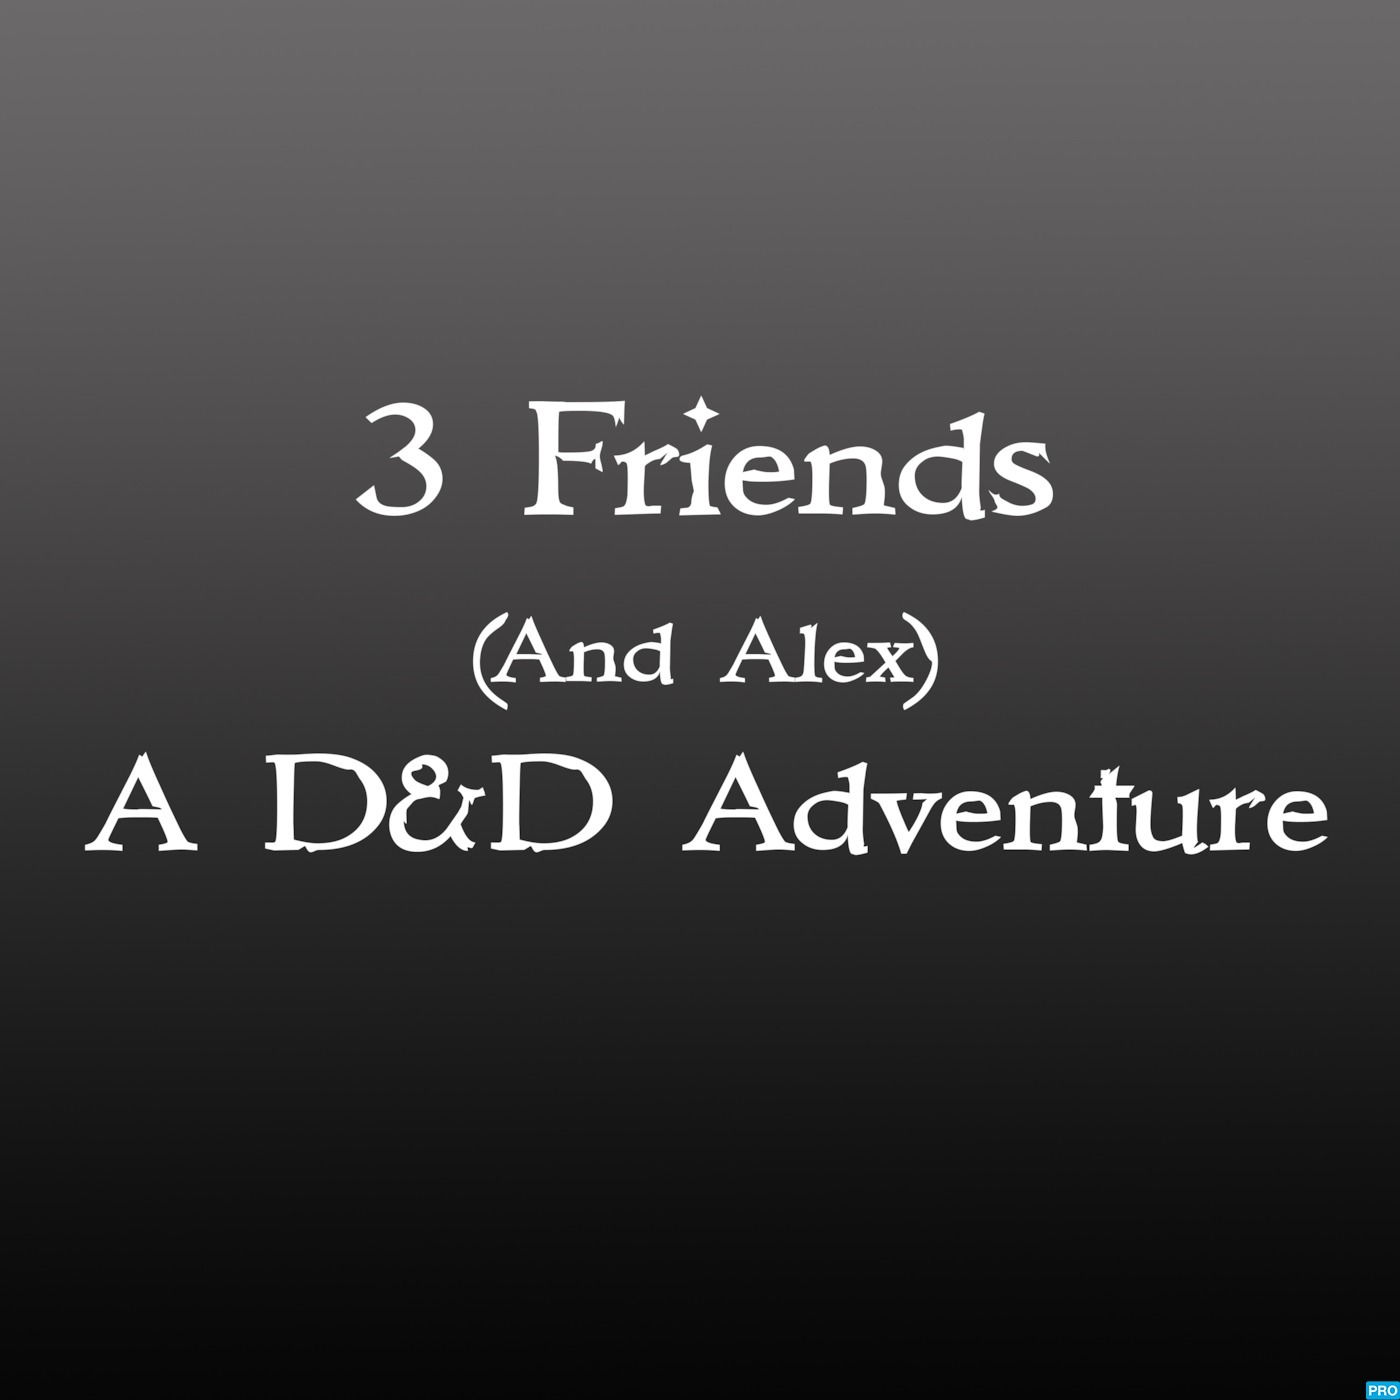 3 Friends And Alex: A D&D Adventure